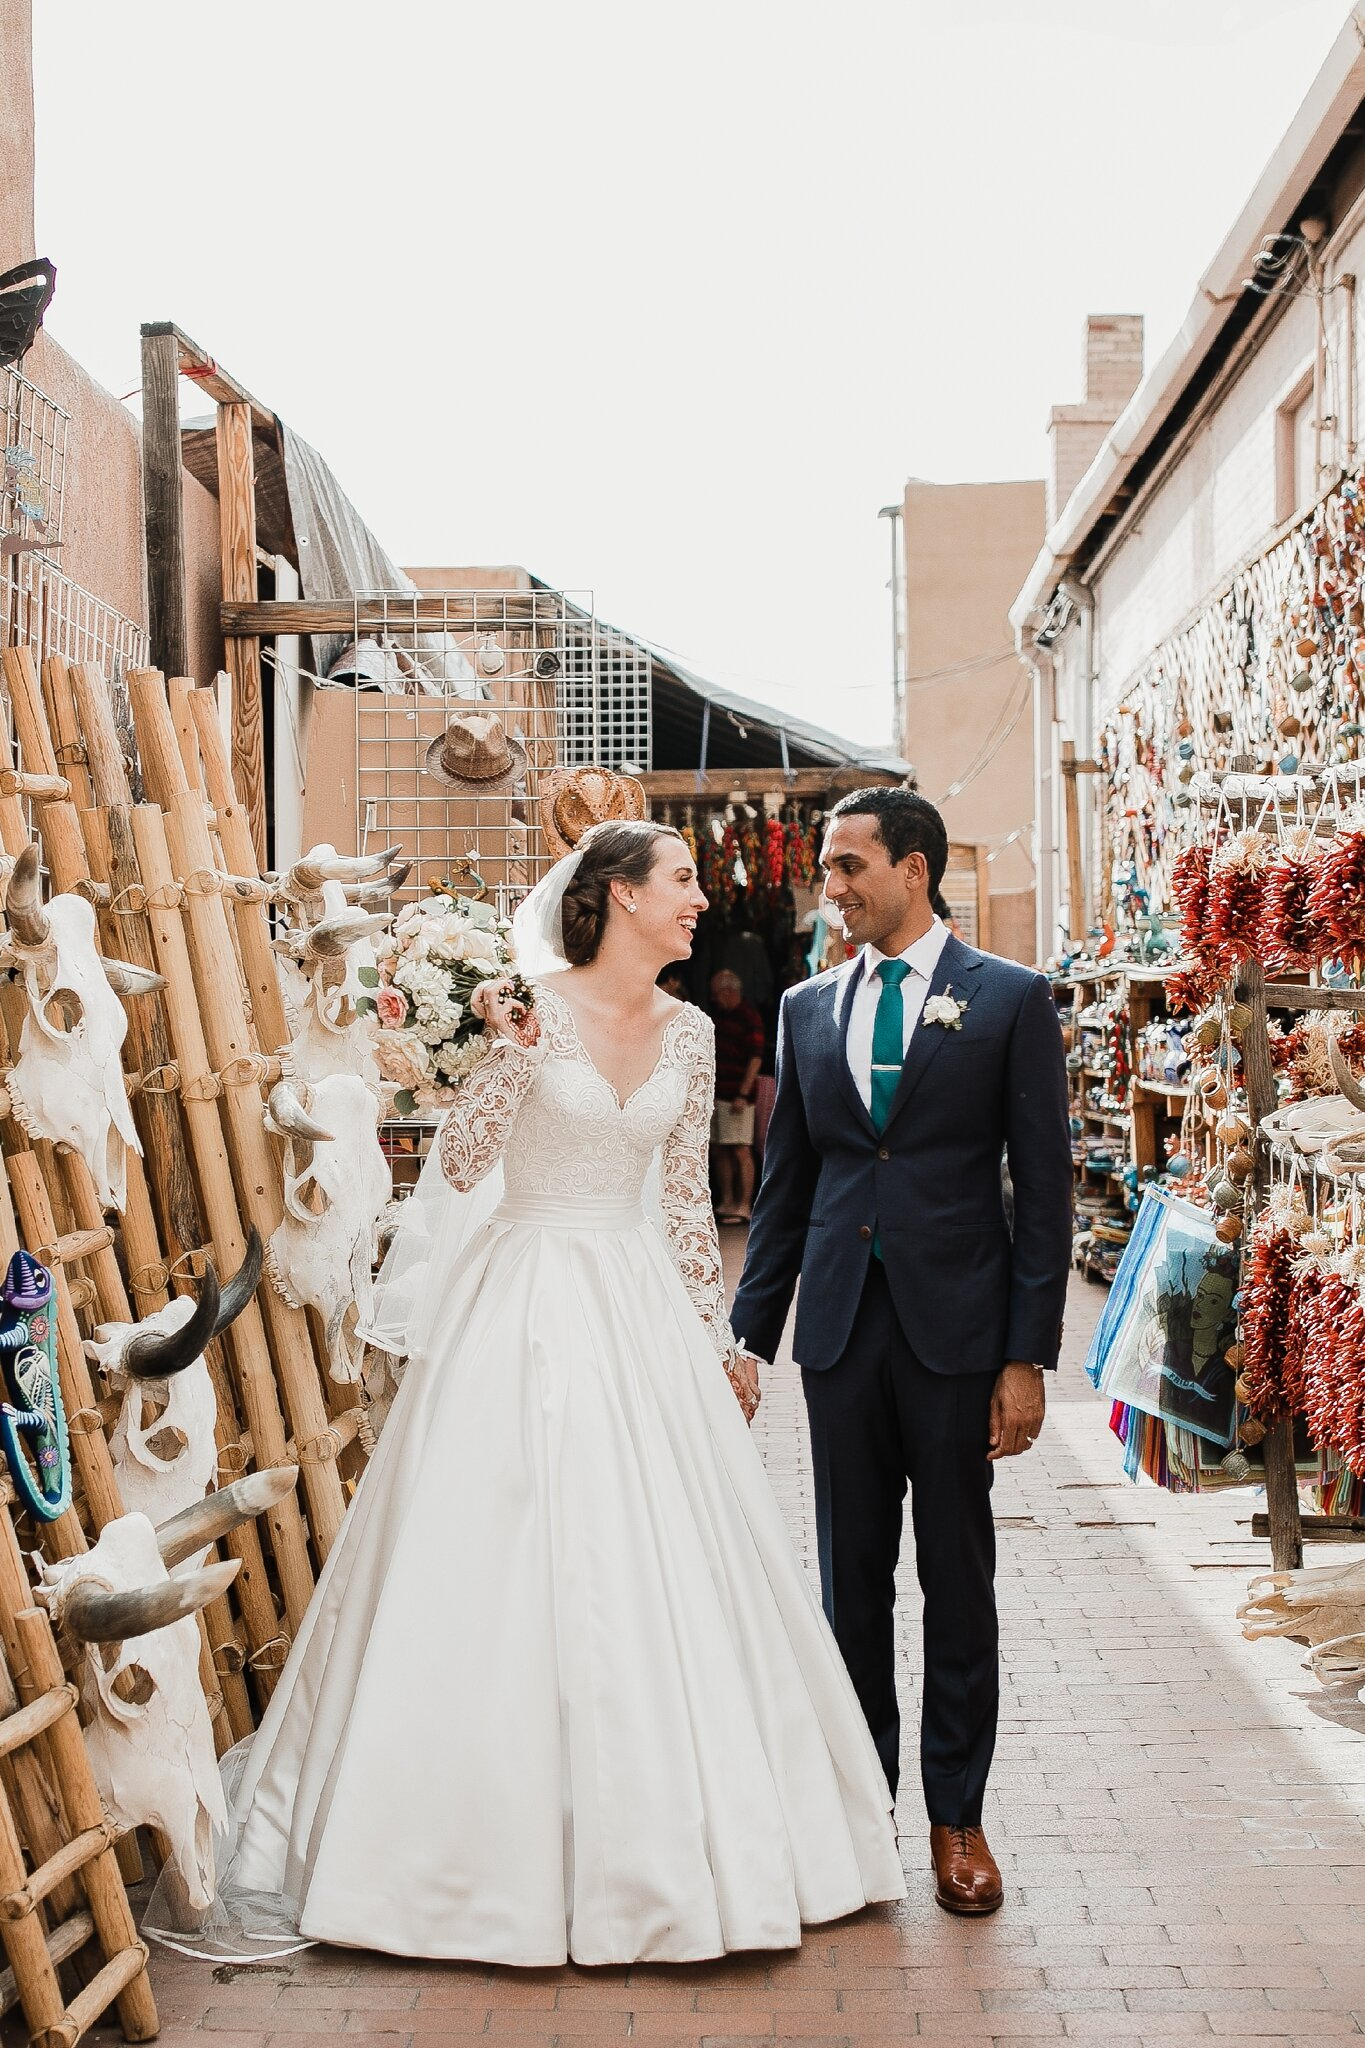 Alicia+lucia+photography+-+albuquerque+wedding+photographer+-+santa+fe+wedding+photography+-+new+mexico+wedding+photographer+-+new+mexico+wedding+-+hindu+wedding+-+catholic+wedding+-+multicultural+wedding+-+santa+fe+wedding_0057.jpg